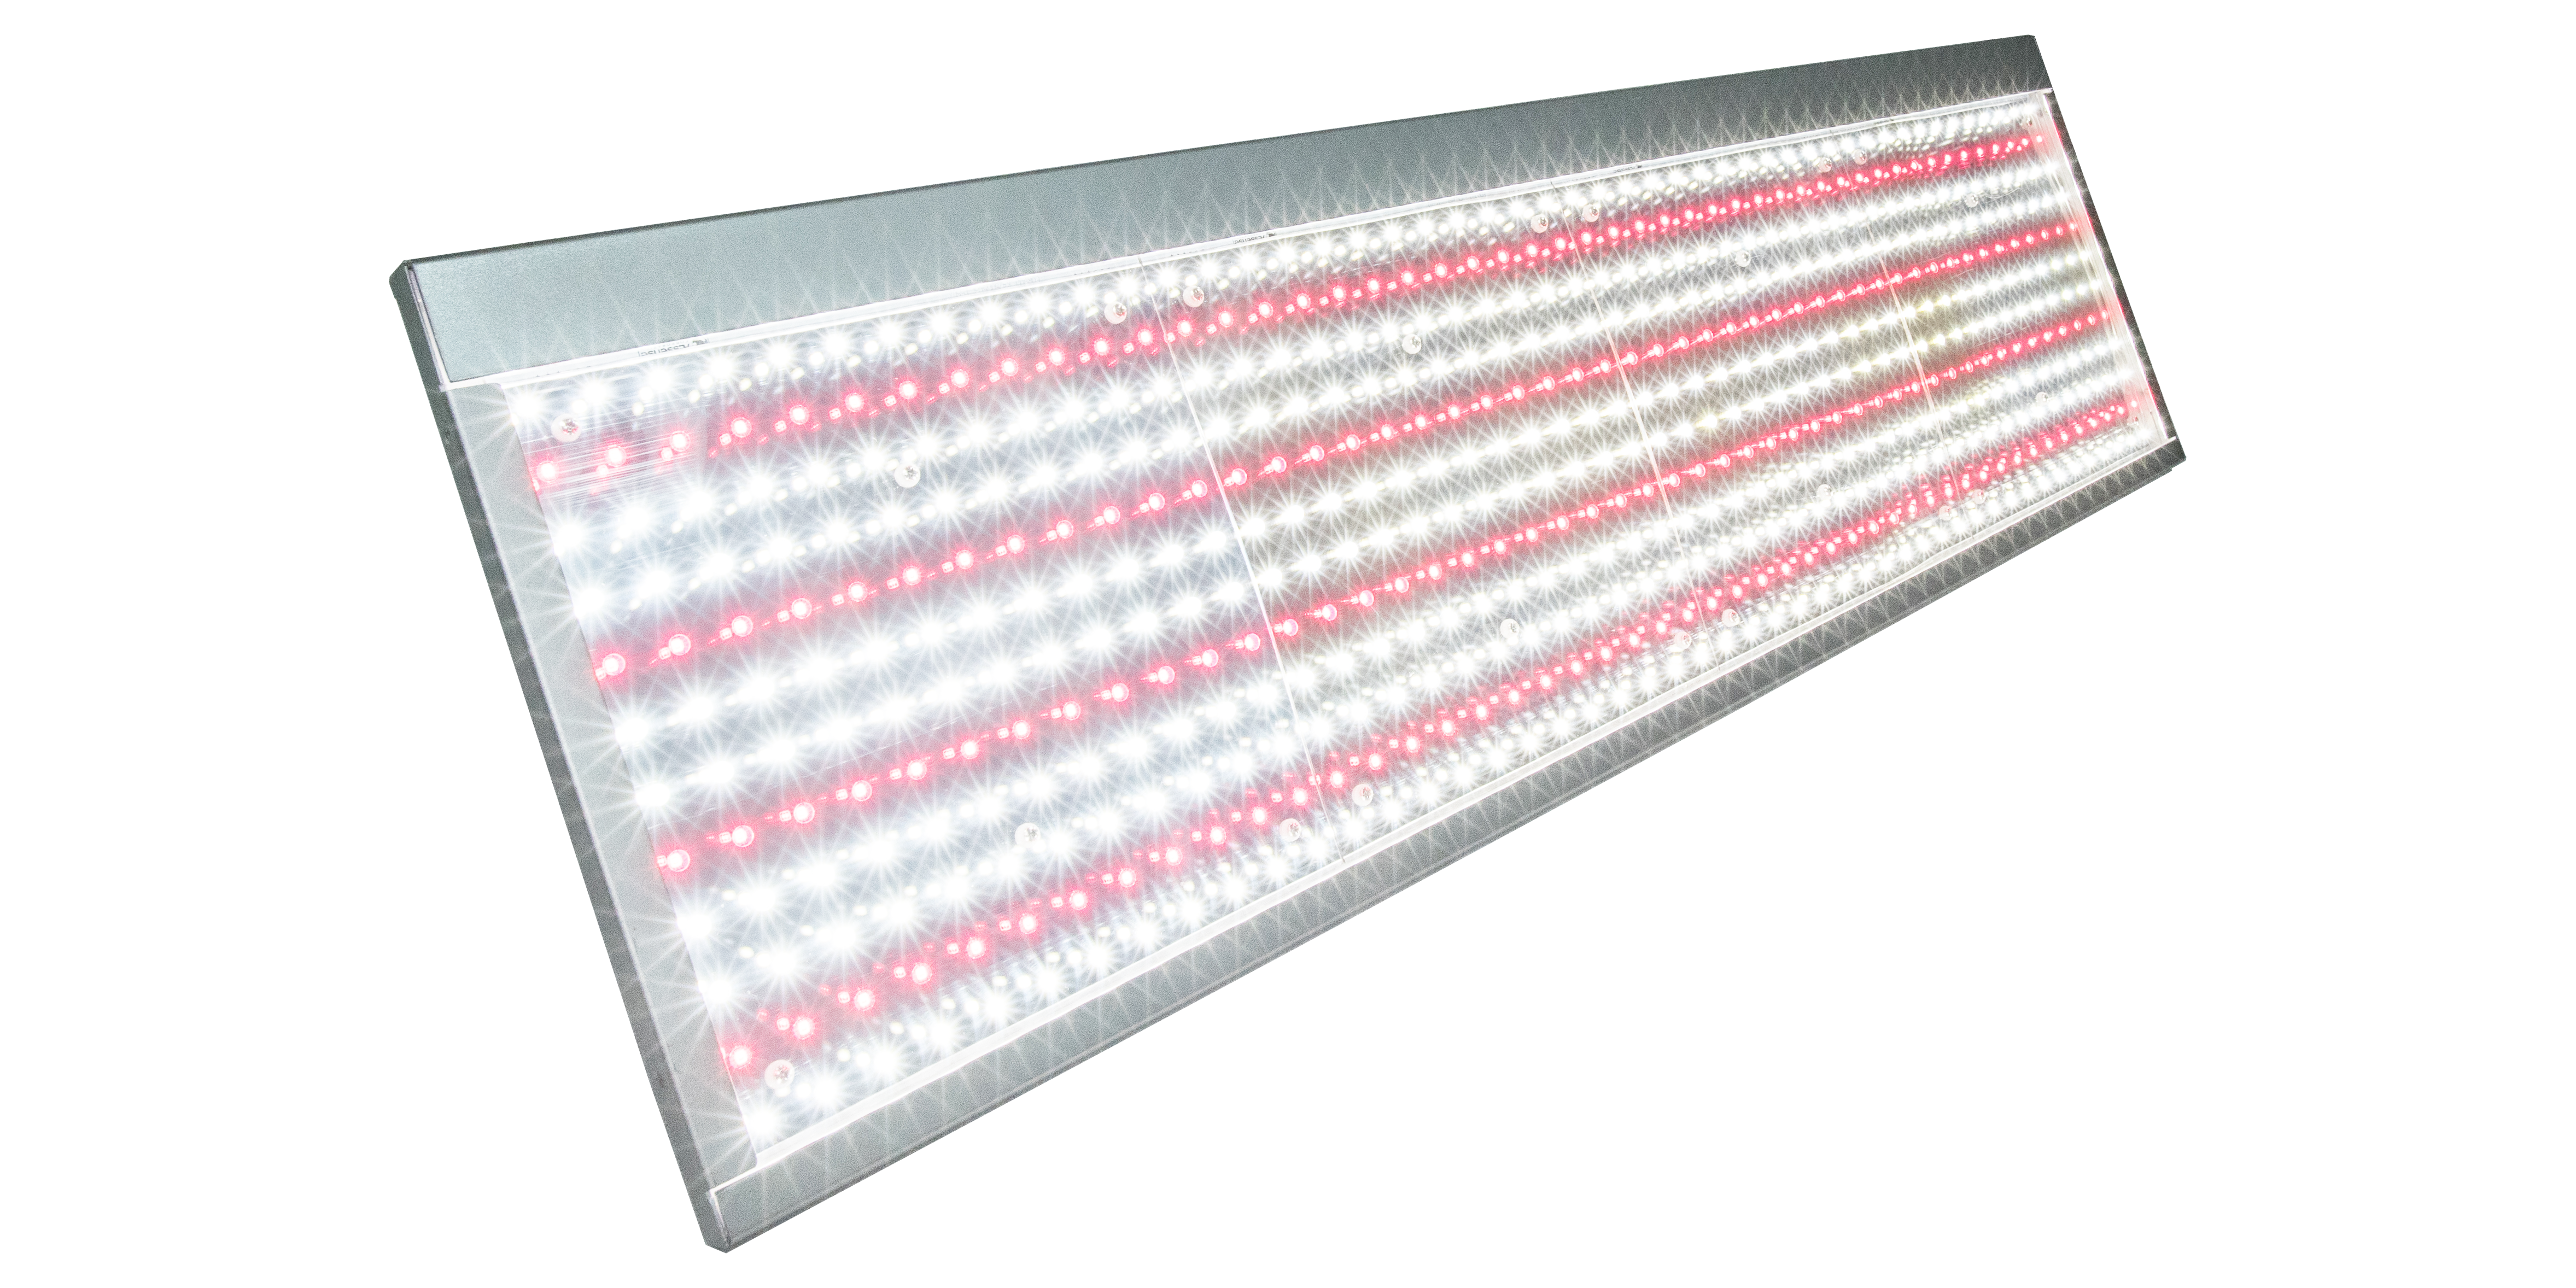 AEdge LED grow light panel